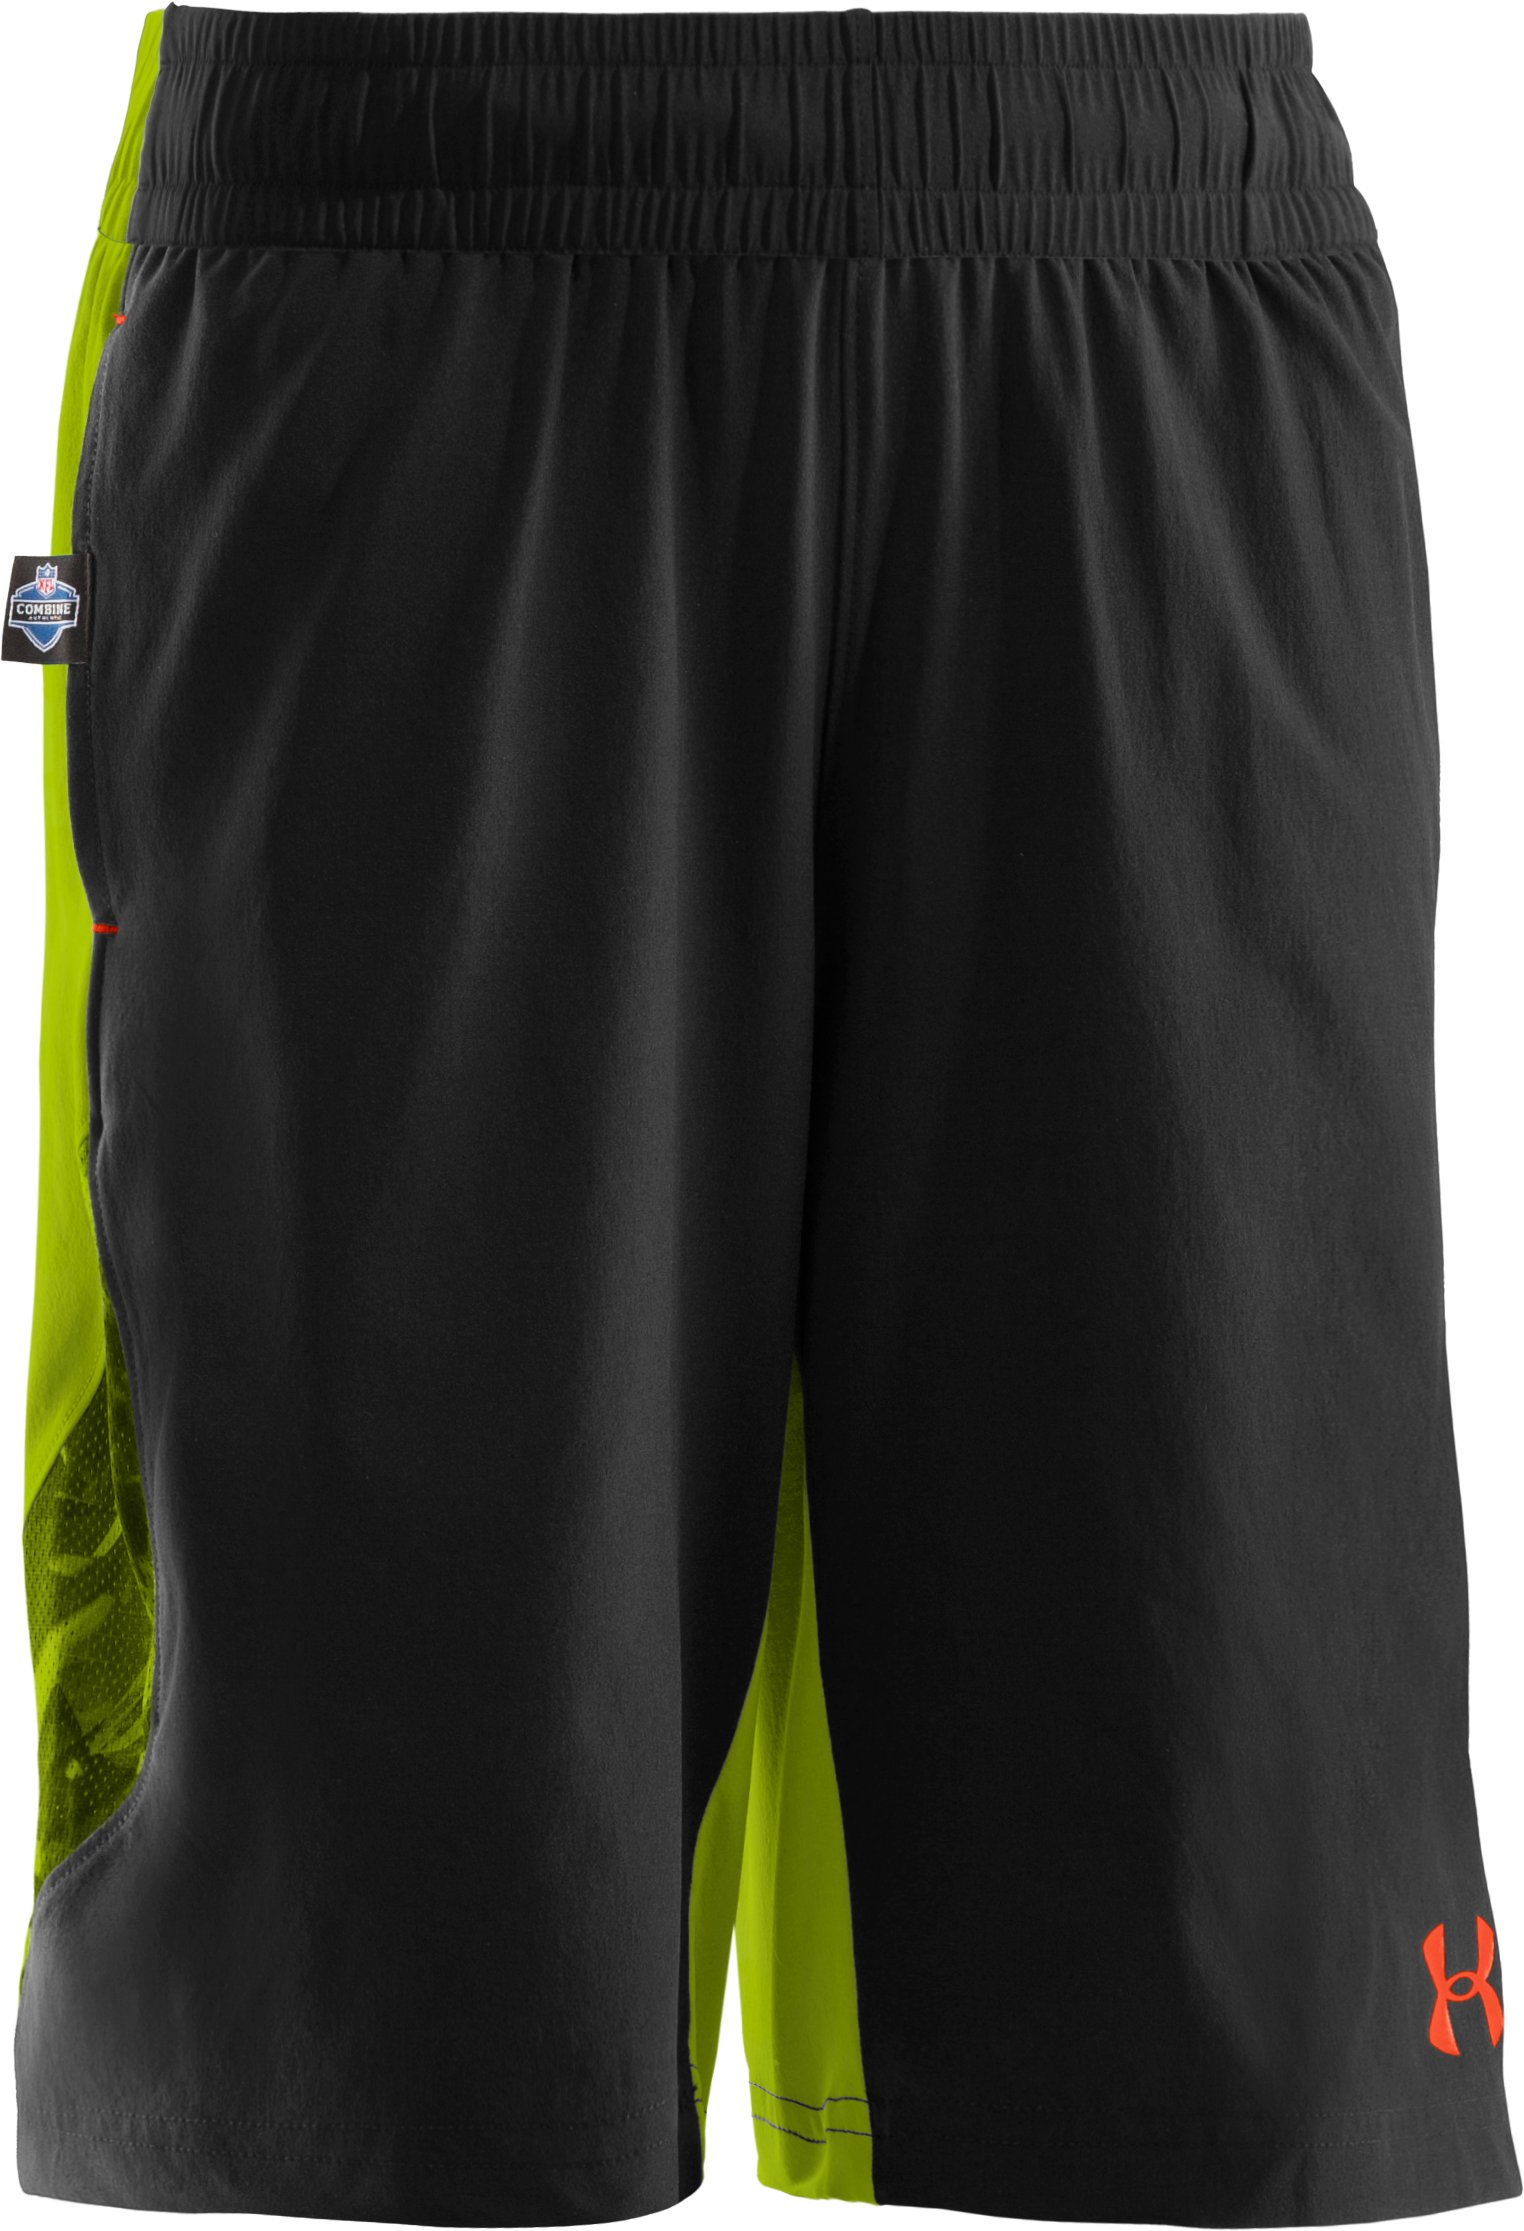 Boys' NFL Combine Authentic Shorts, Black ,